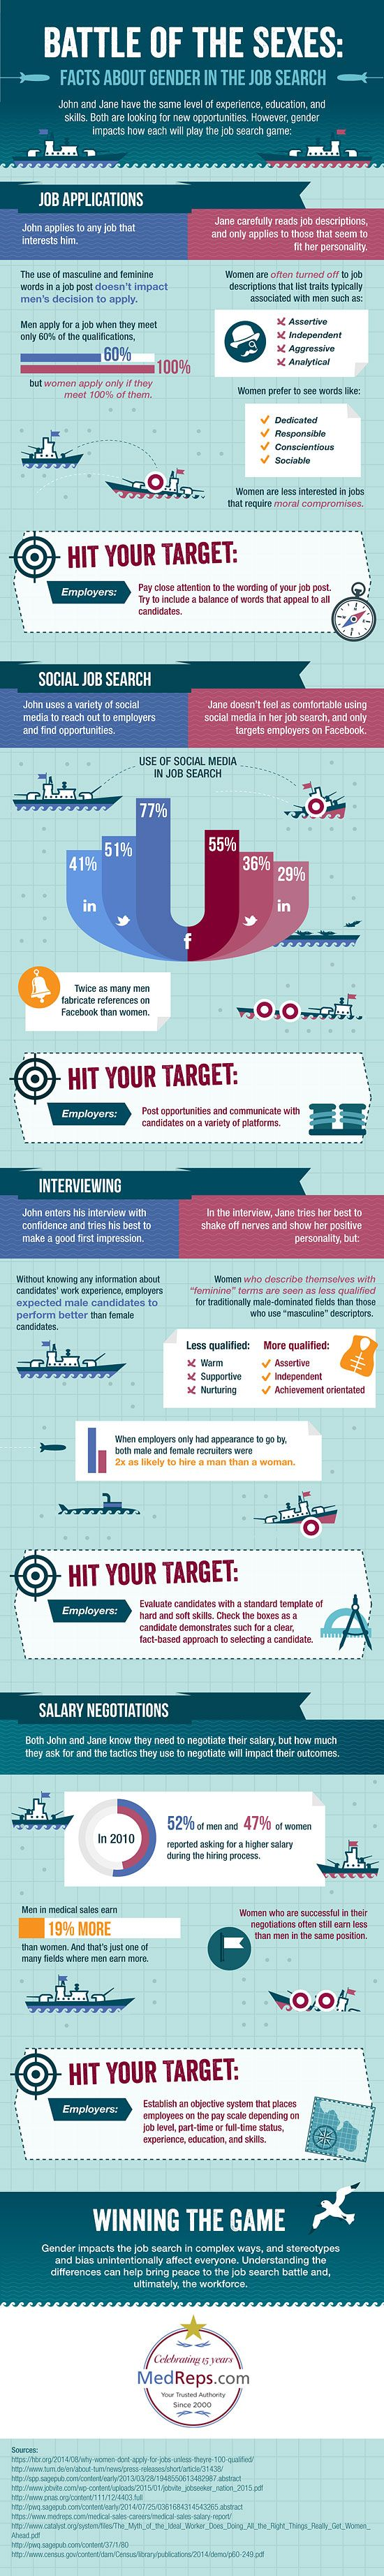 162 best Social Recruiting images on Pinterest   Info graphics ...